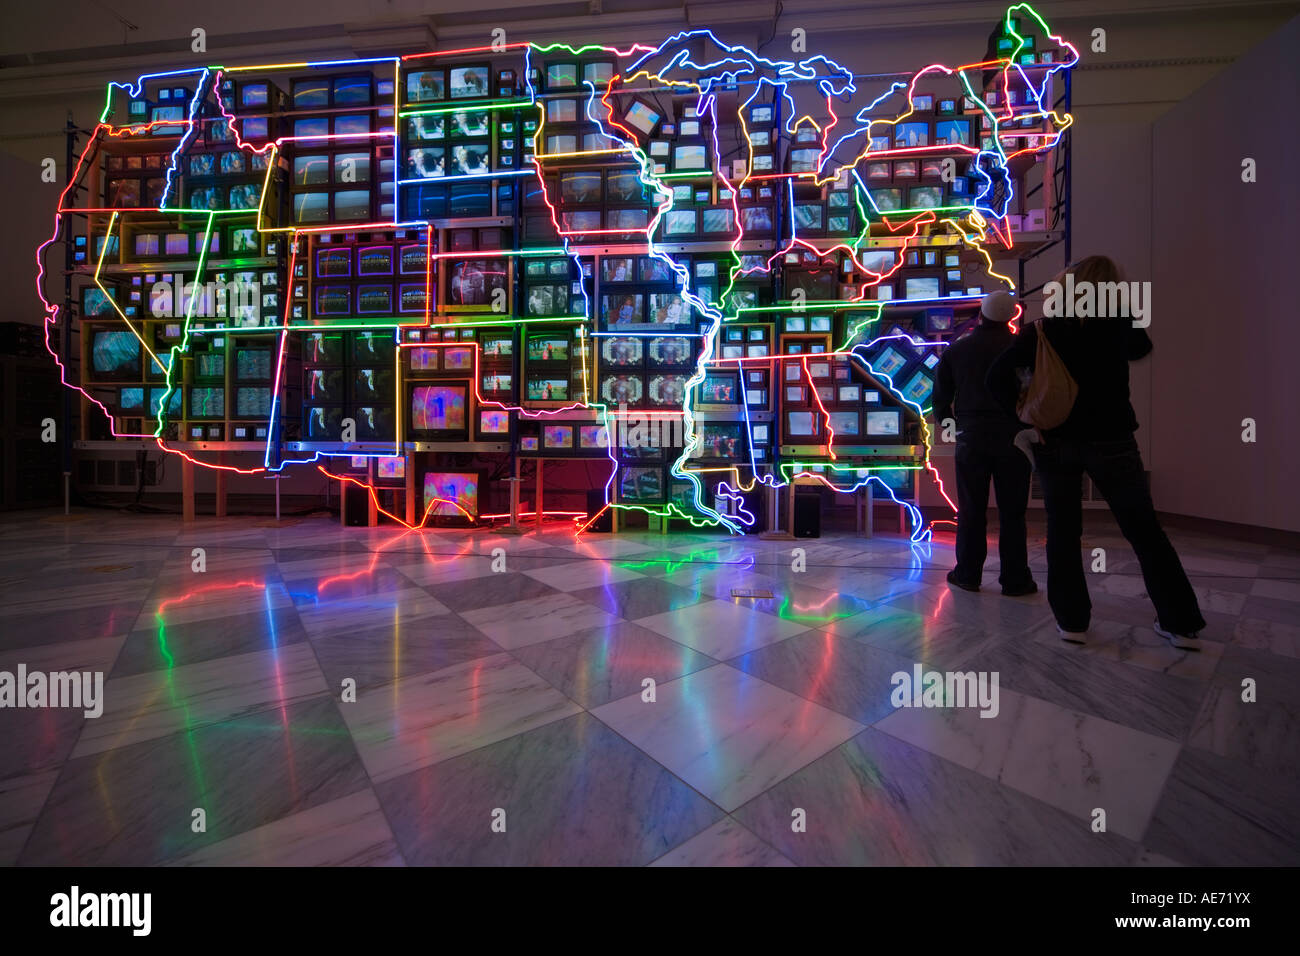 Neon Map Of The Usa In Sculpture Video Art Installation Electronic Stock Photo Alamy